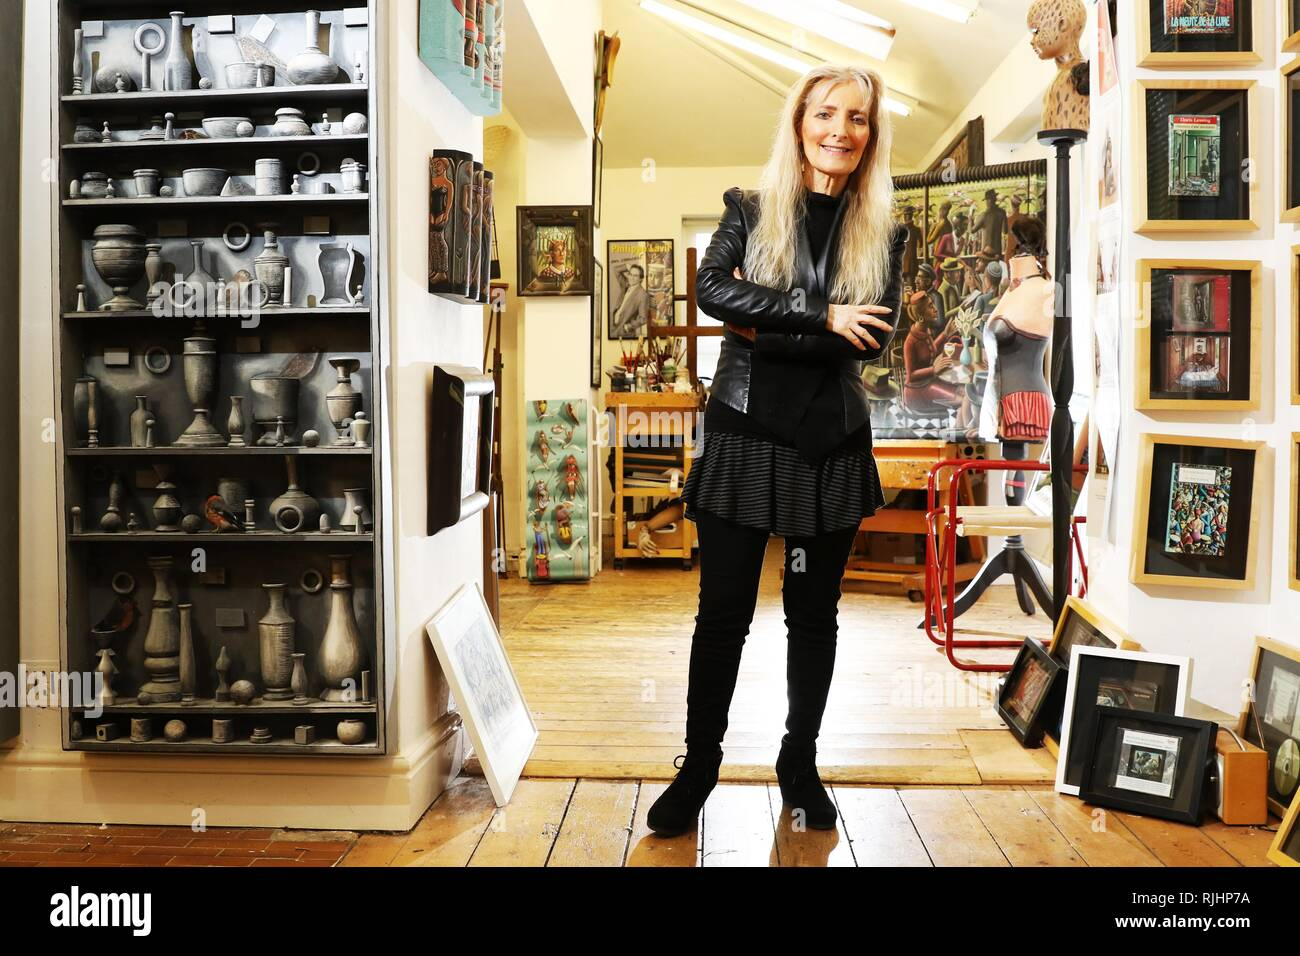 Artist PJ Crook at her home and studio in Bishop's Cleeve - Stock Image